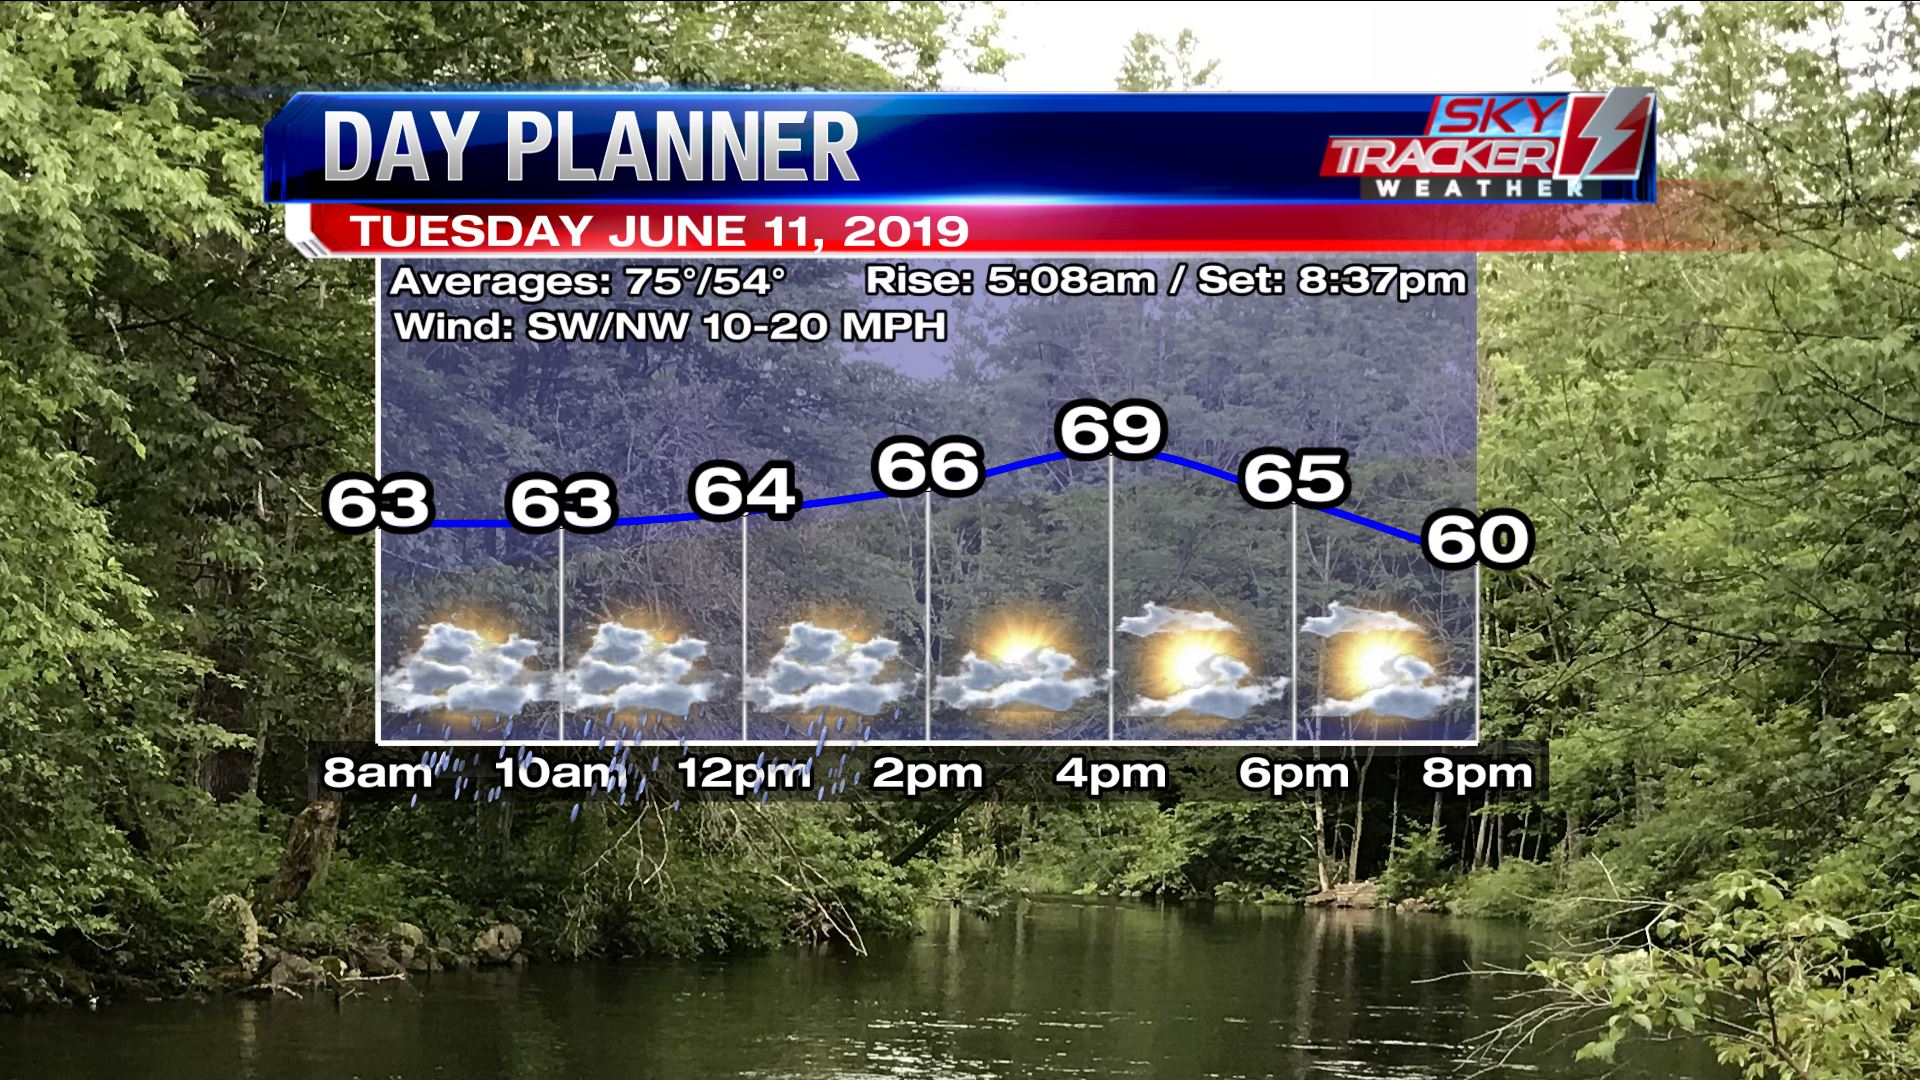 Planner for Tuesday June 11 2019